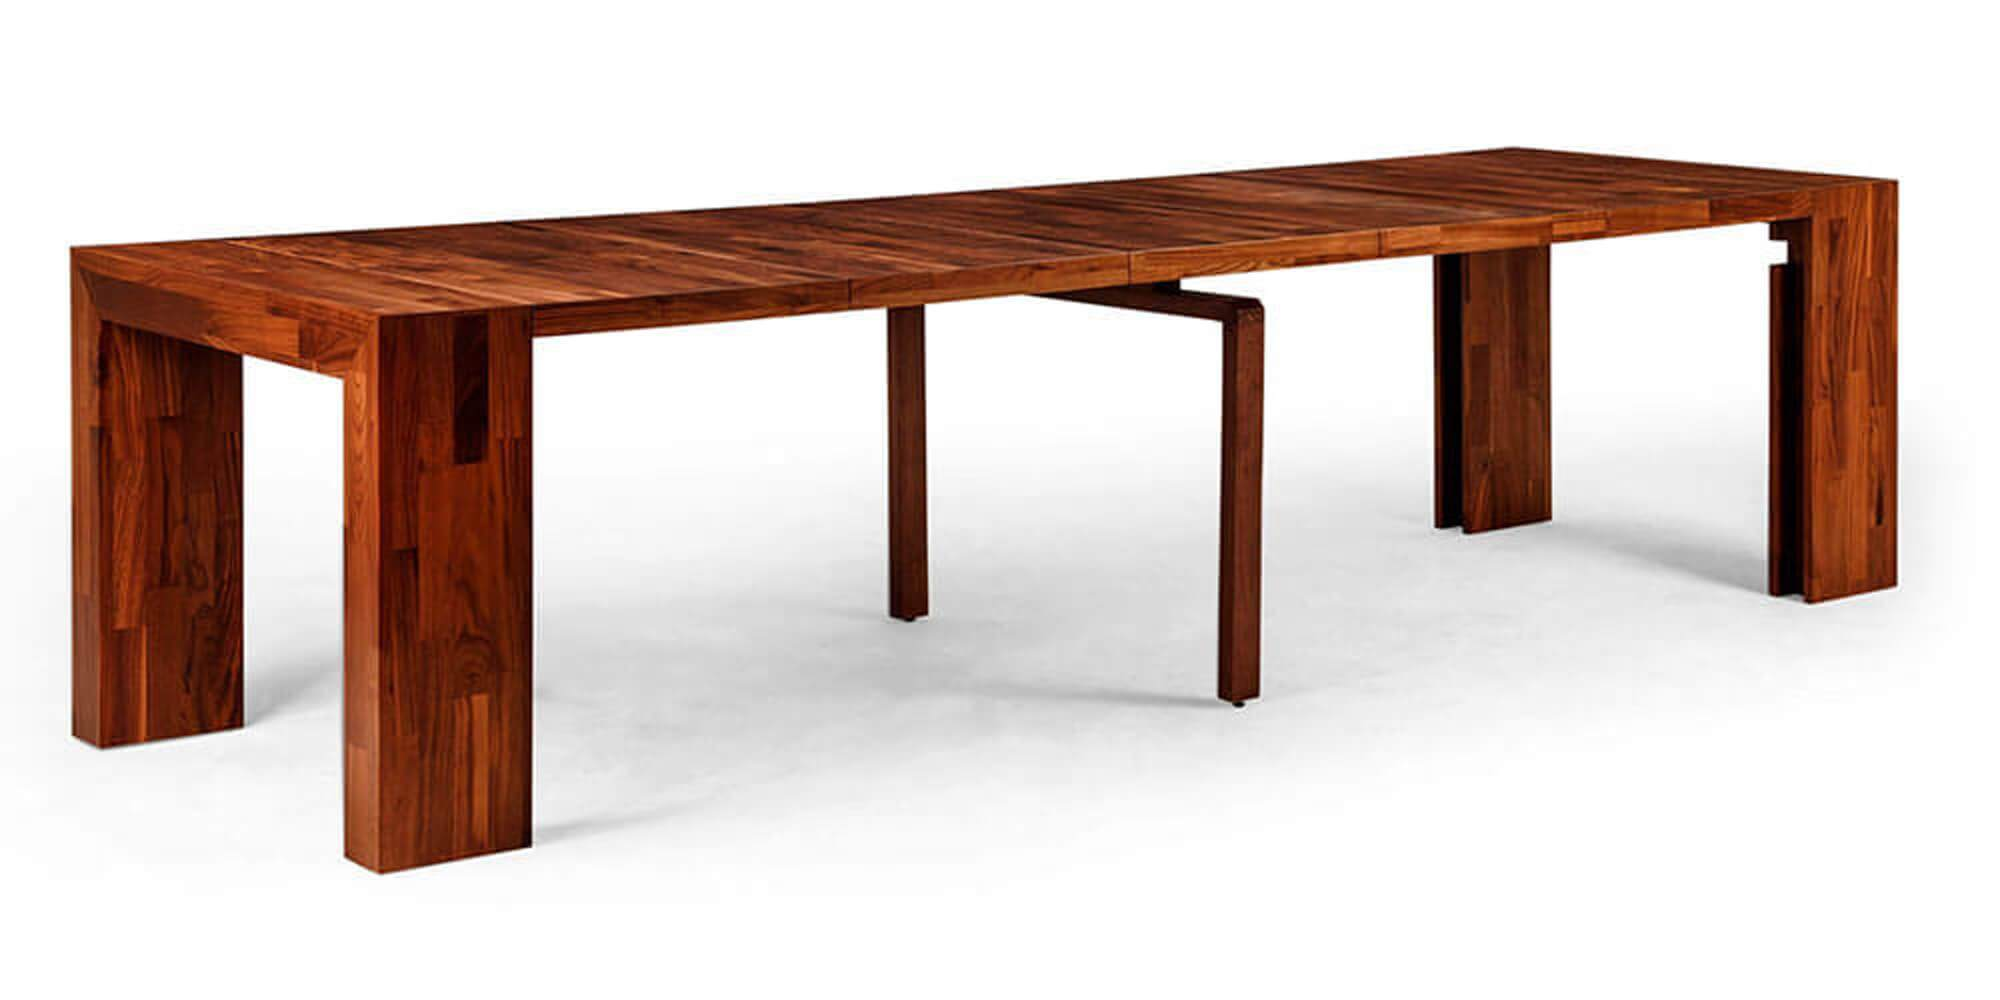 The Full Dining Set 2.0 + Chestnut